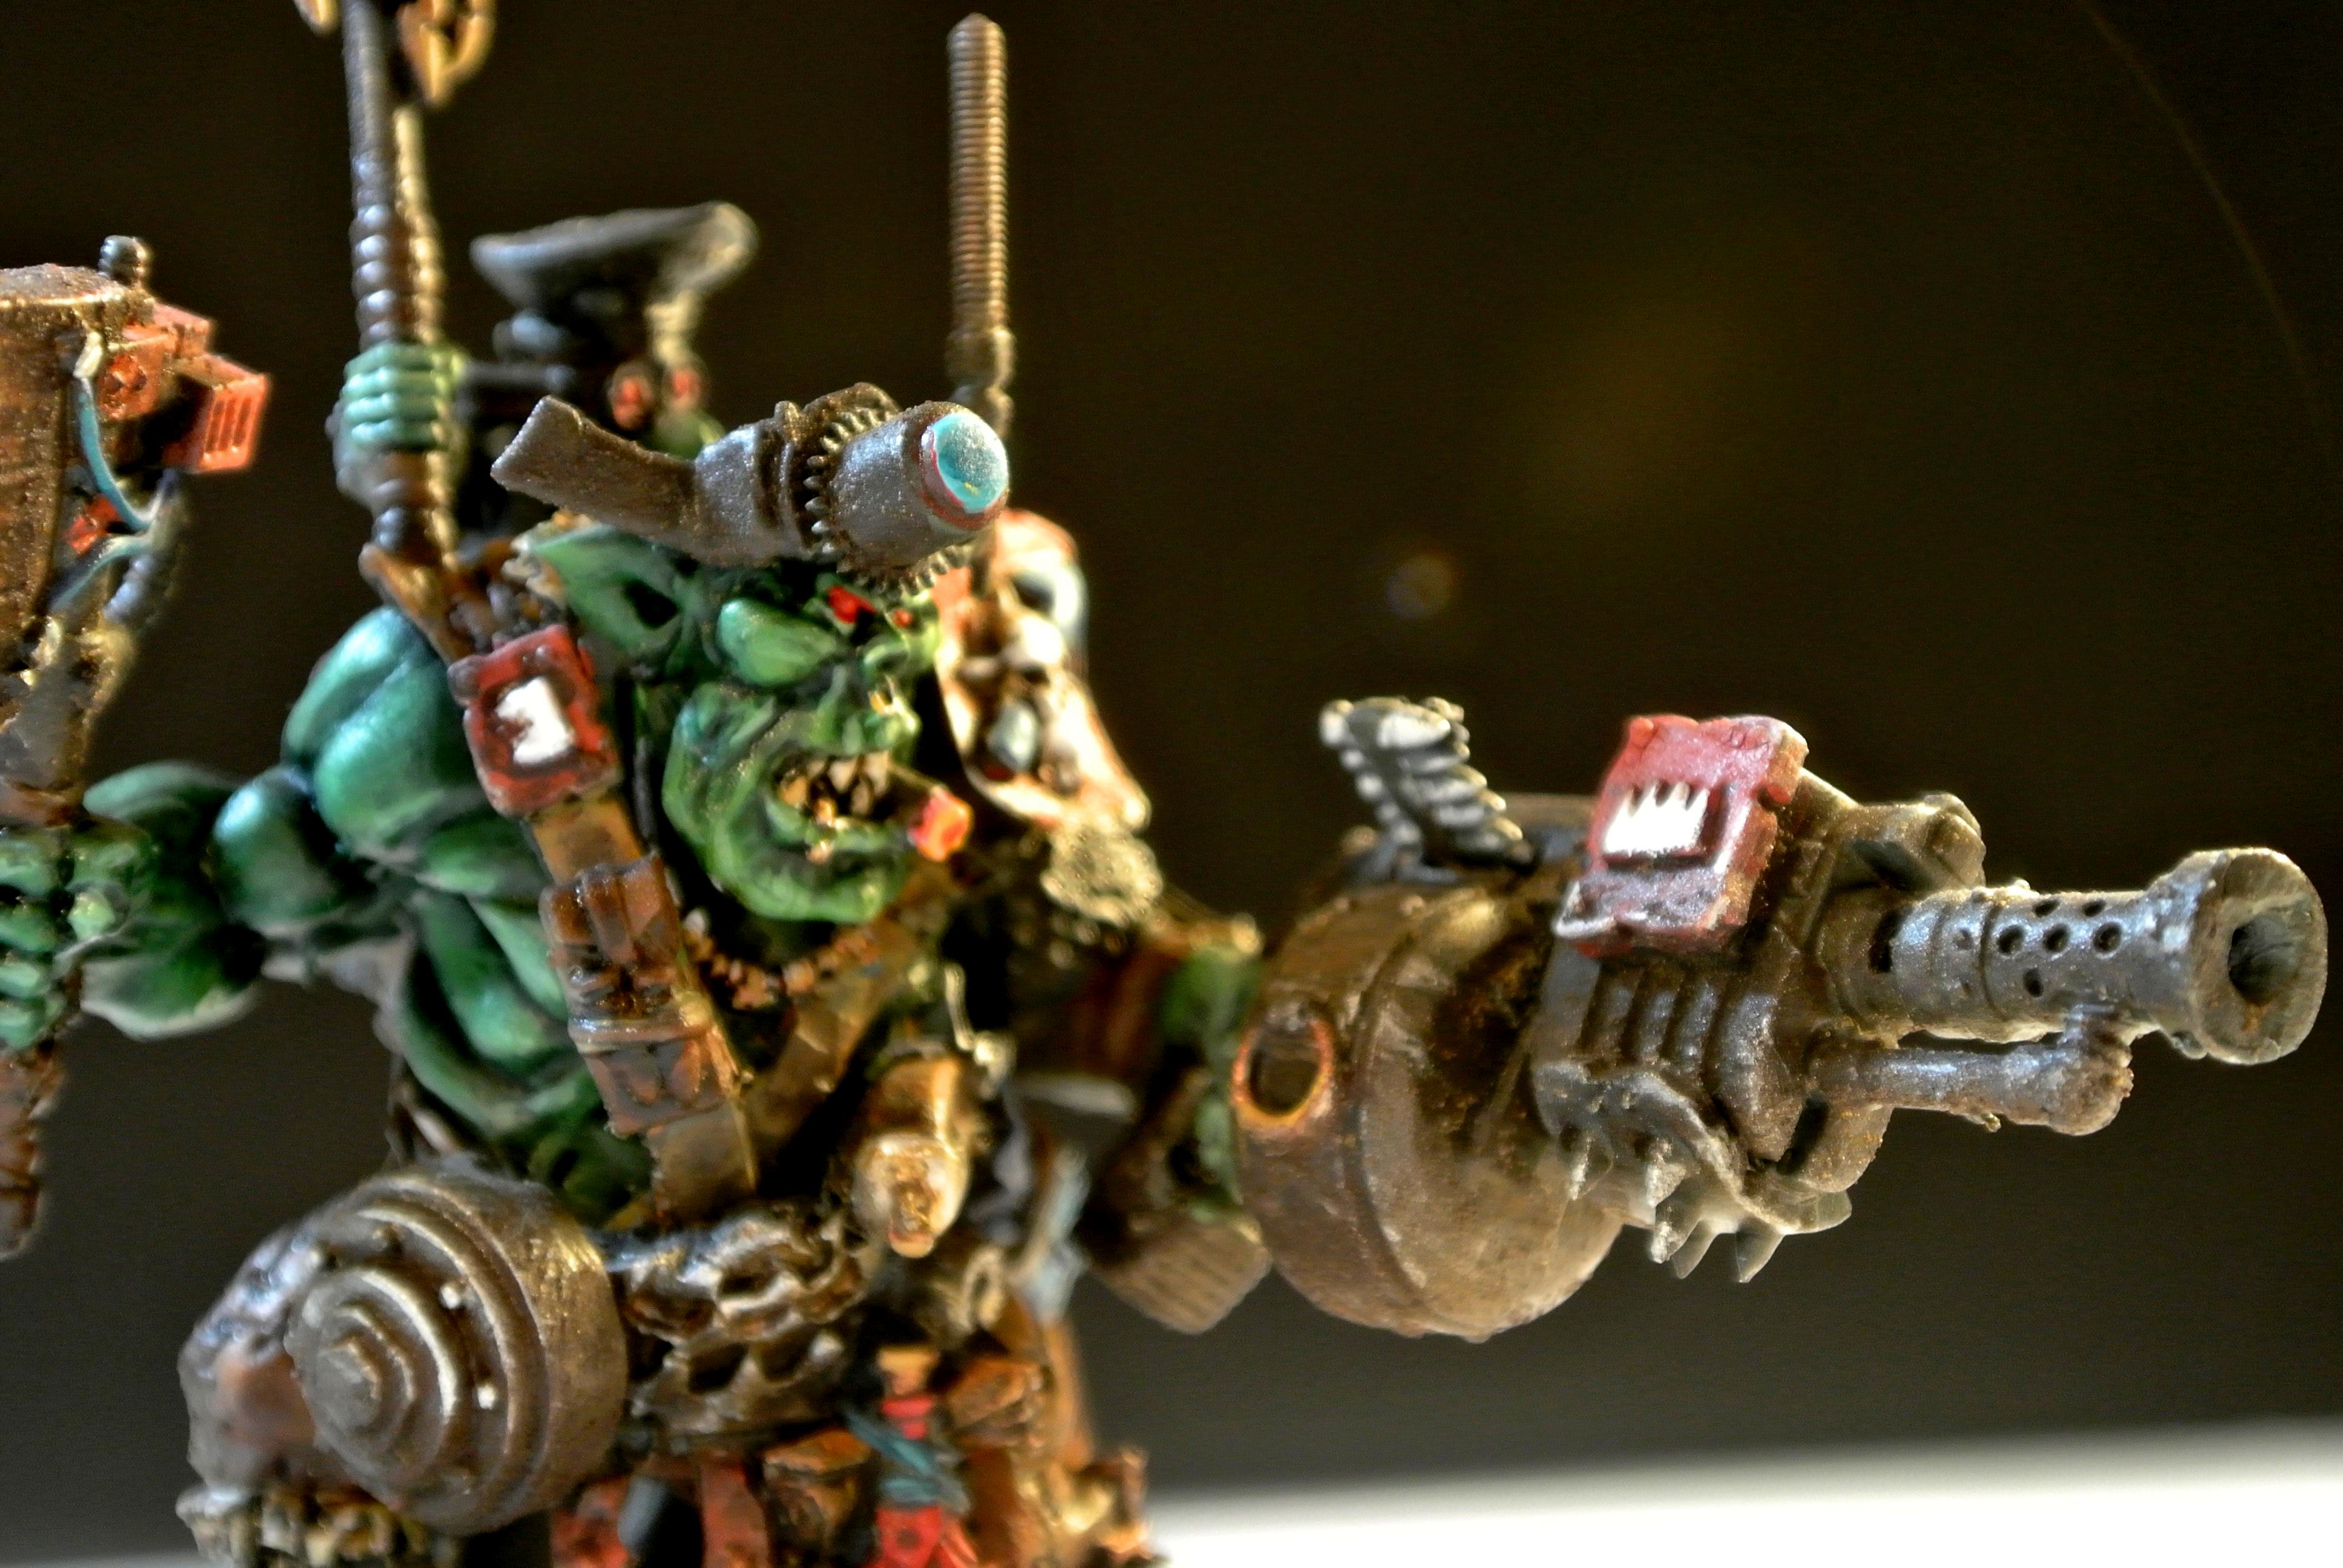 Blood Axe, Conversion, Ork Kommando, Warboss